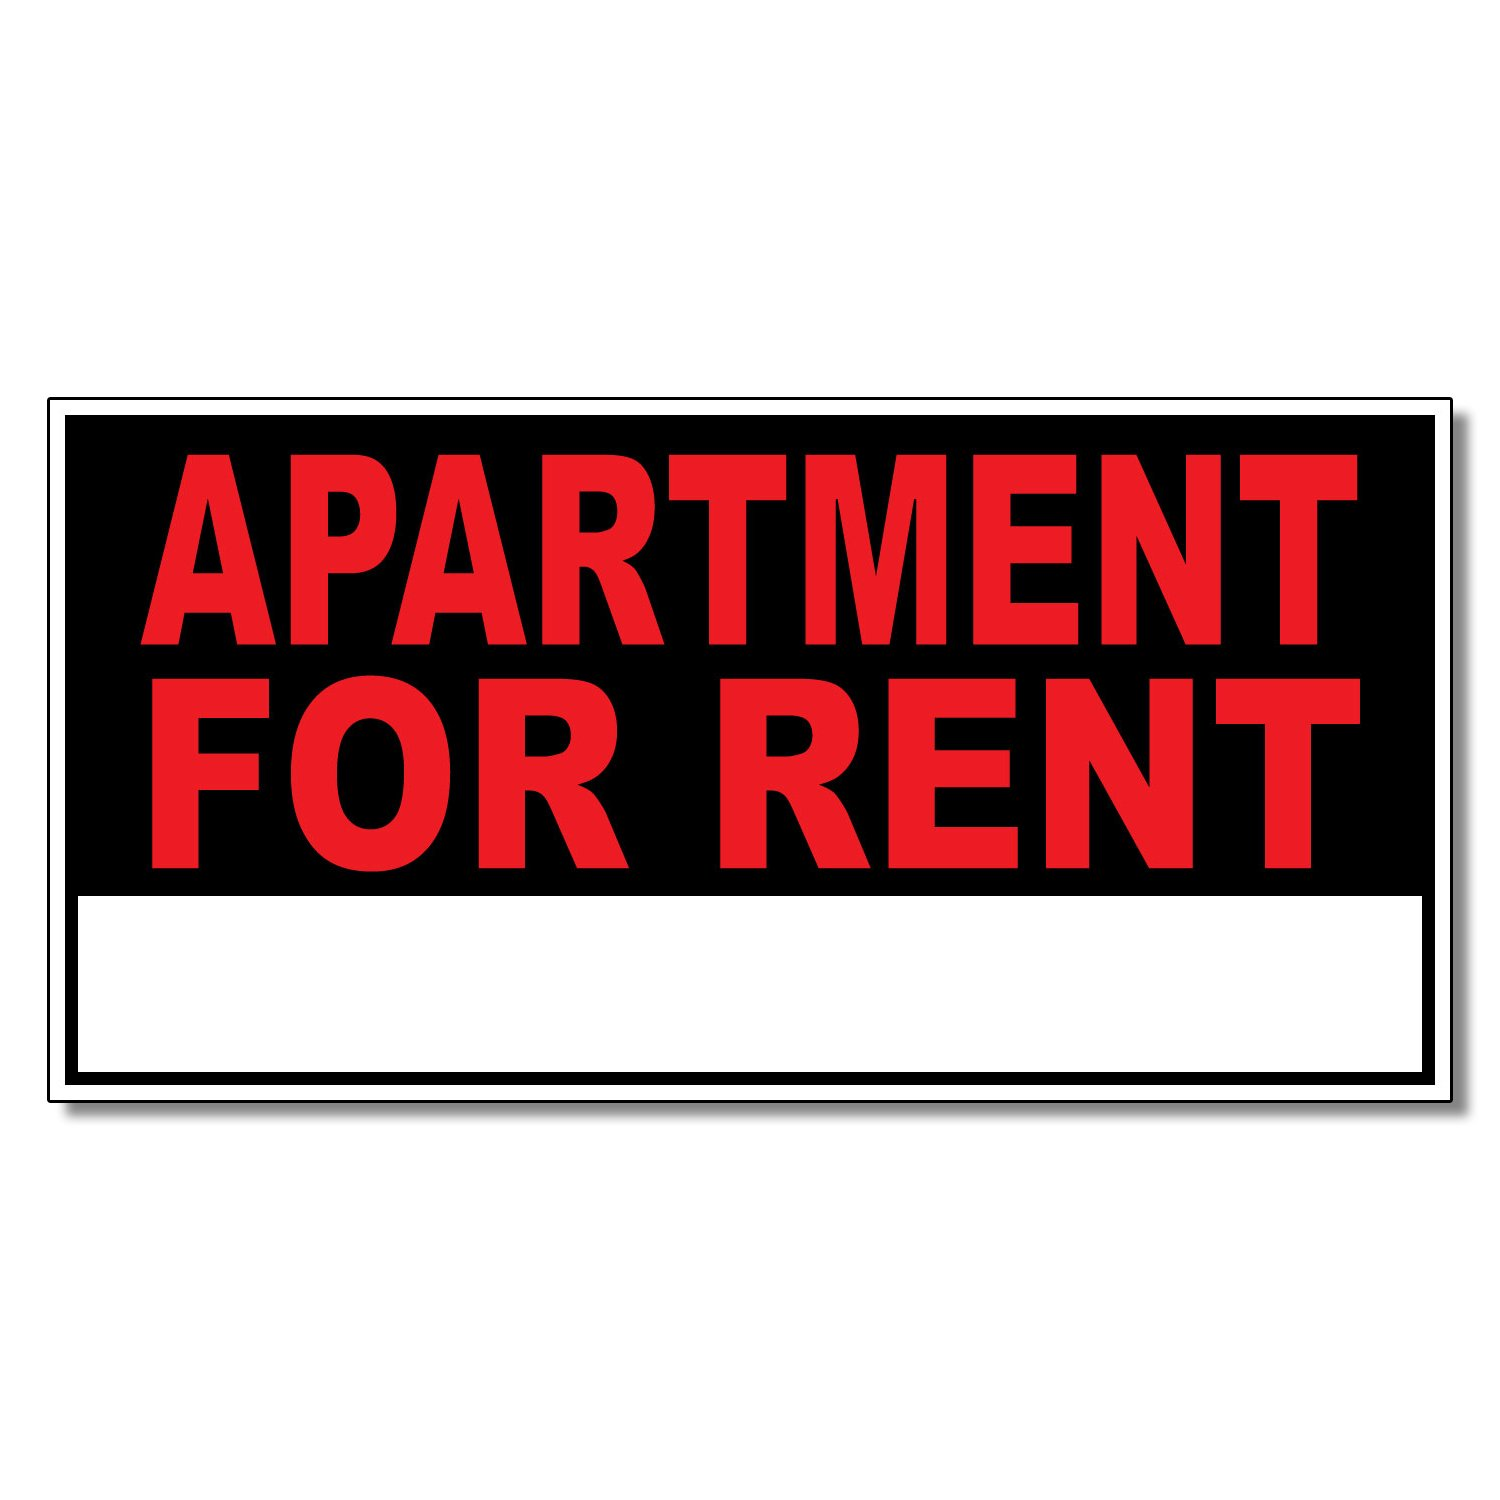 Apartment For Rent Business DECAL STICKER Retail Store Sign 19.5 x 48 inches Fastasticdeals